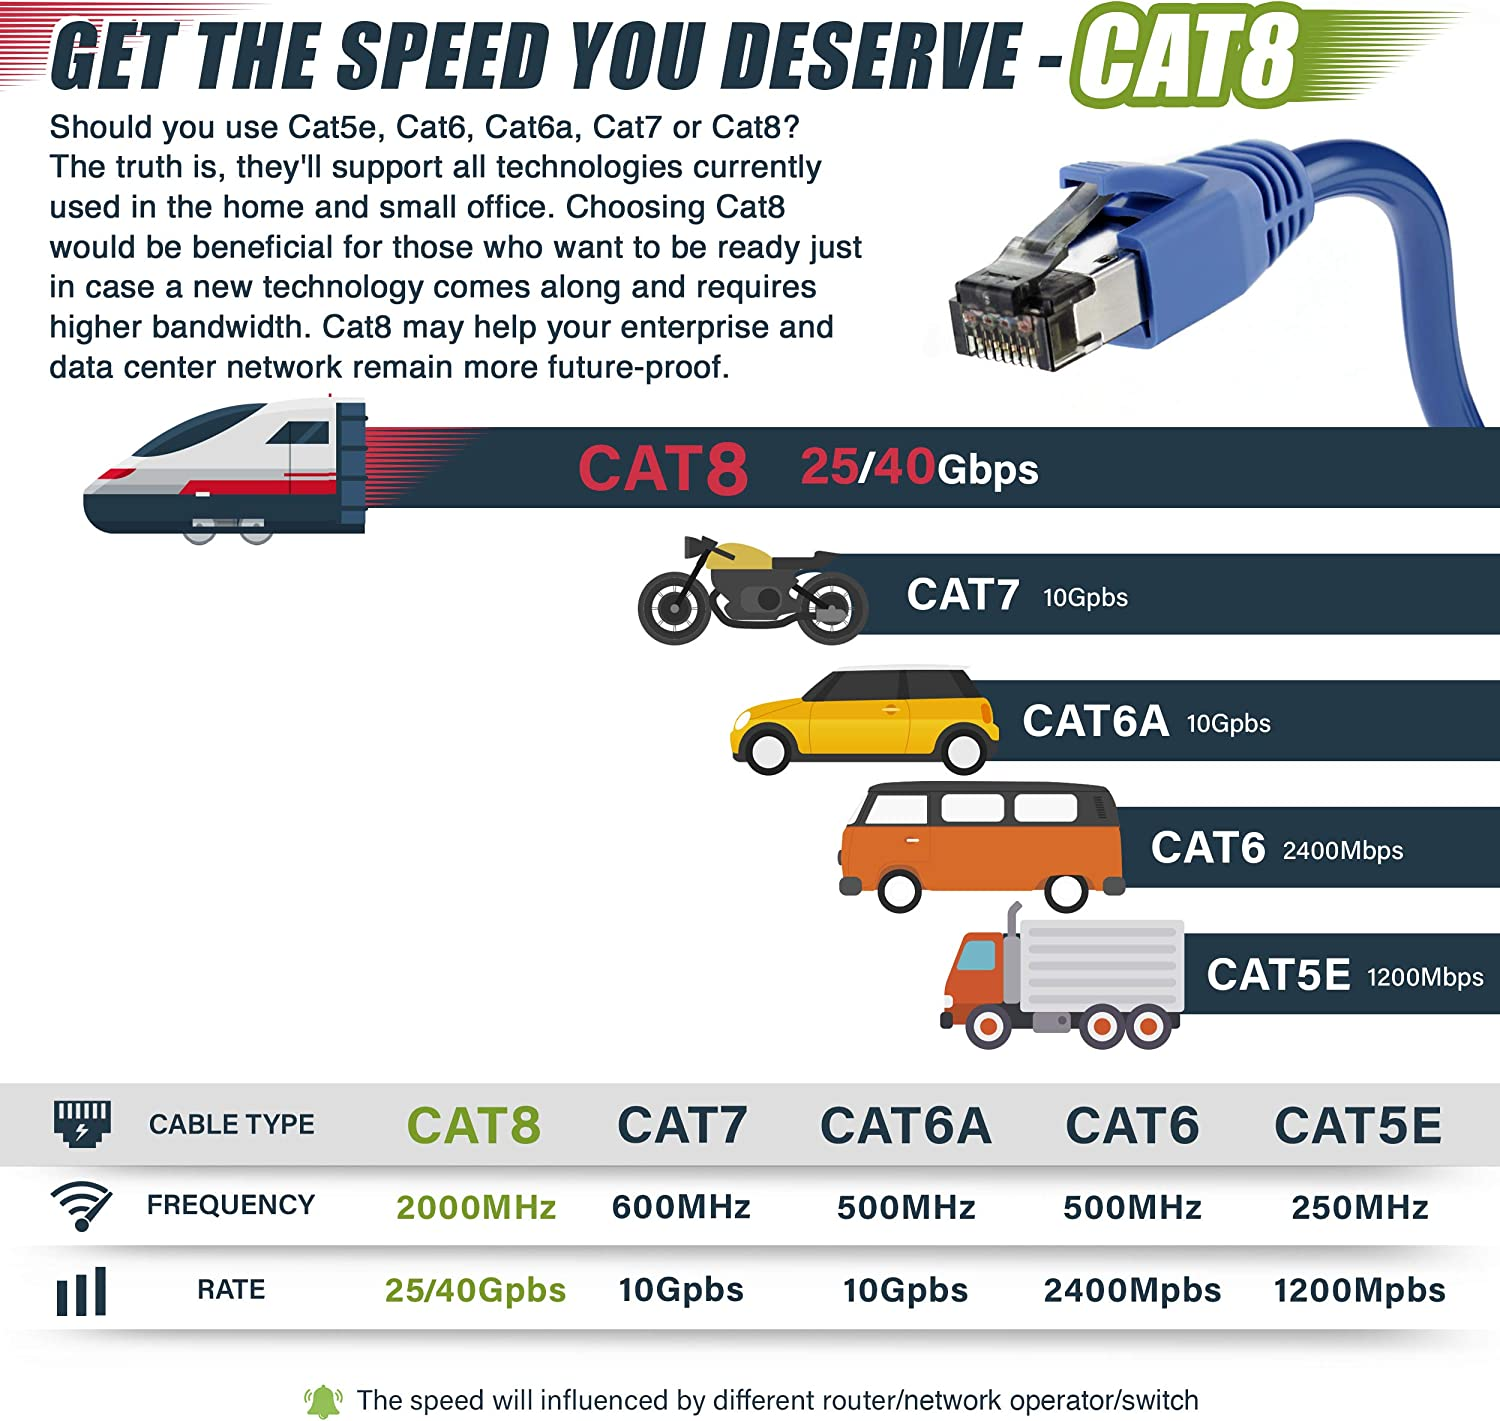 GearIT Cat8 Ethernet Cable S//FTP 1ft // 20 Pack//Blue 24AWG Patch Cable 10Gbps//25Gbps//40Gpbs 2GHz 2000Mhz Cat 8 Category8 Compatible with Data Center//Enterprise//Smart Home Network